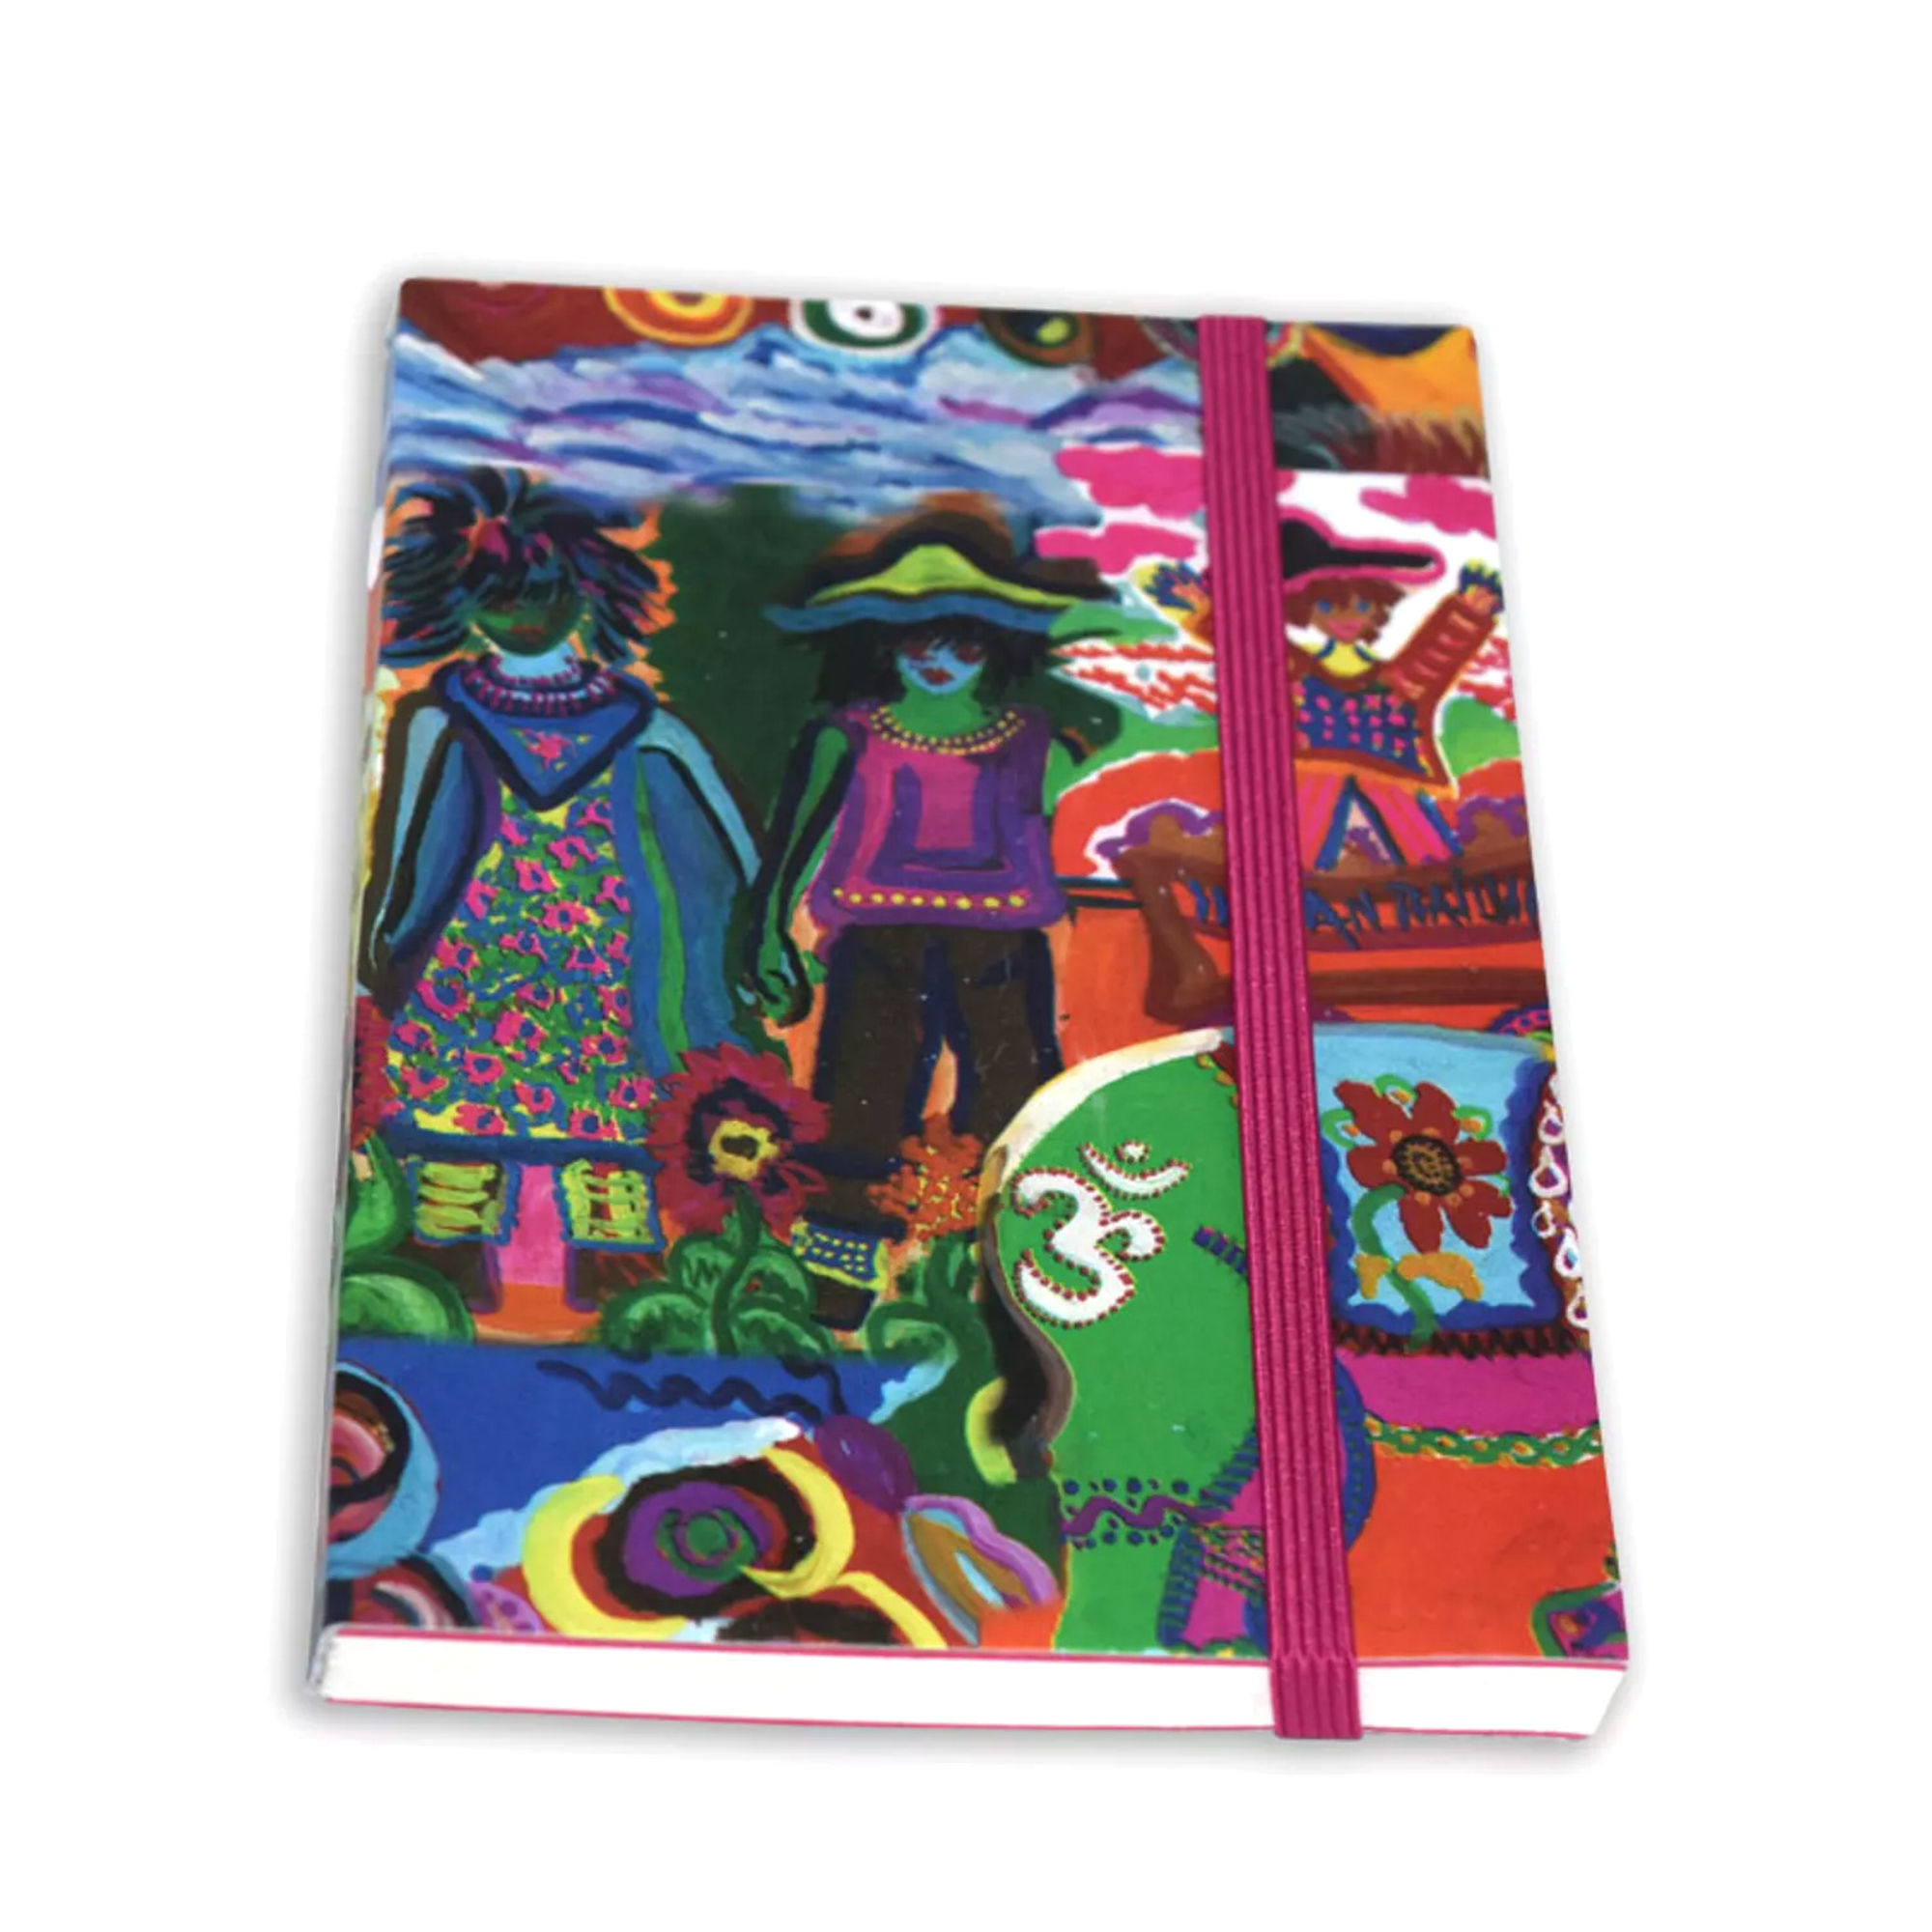 Beautiful Printed Journal, Medium